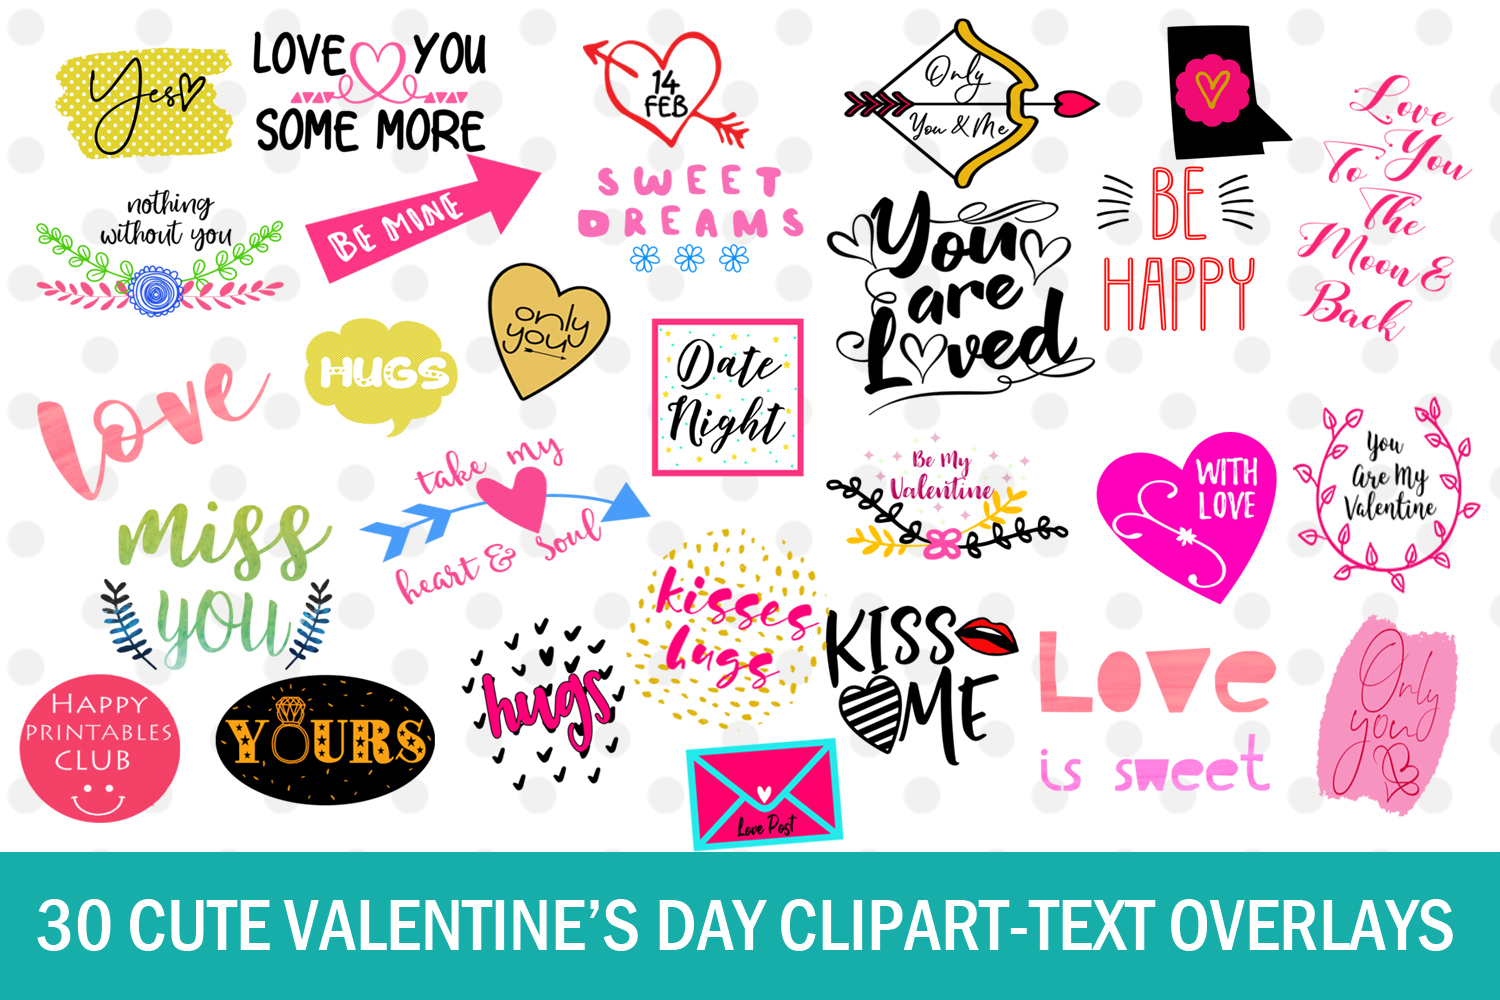 Cute Valentine's Day Clipart.